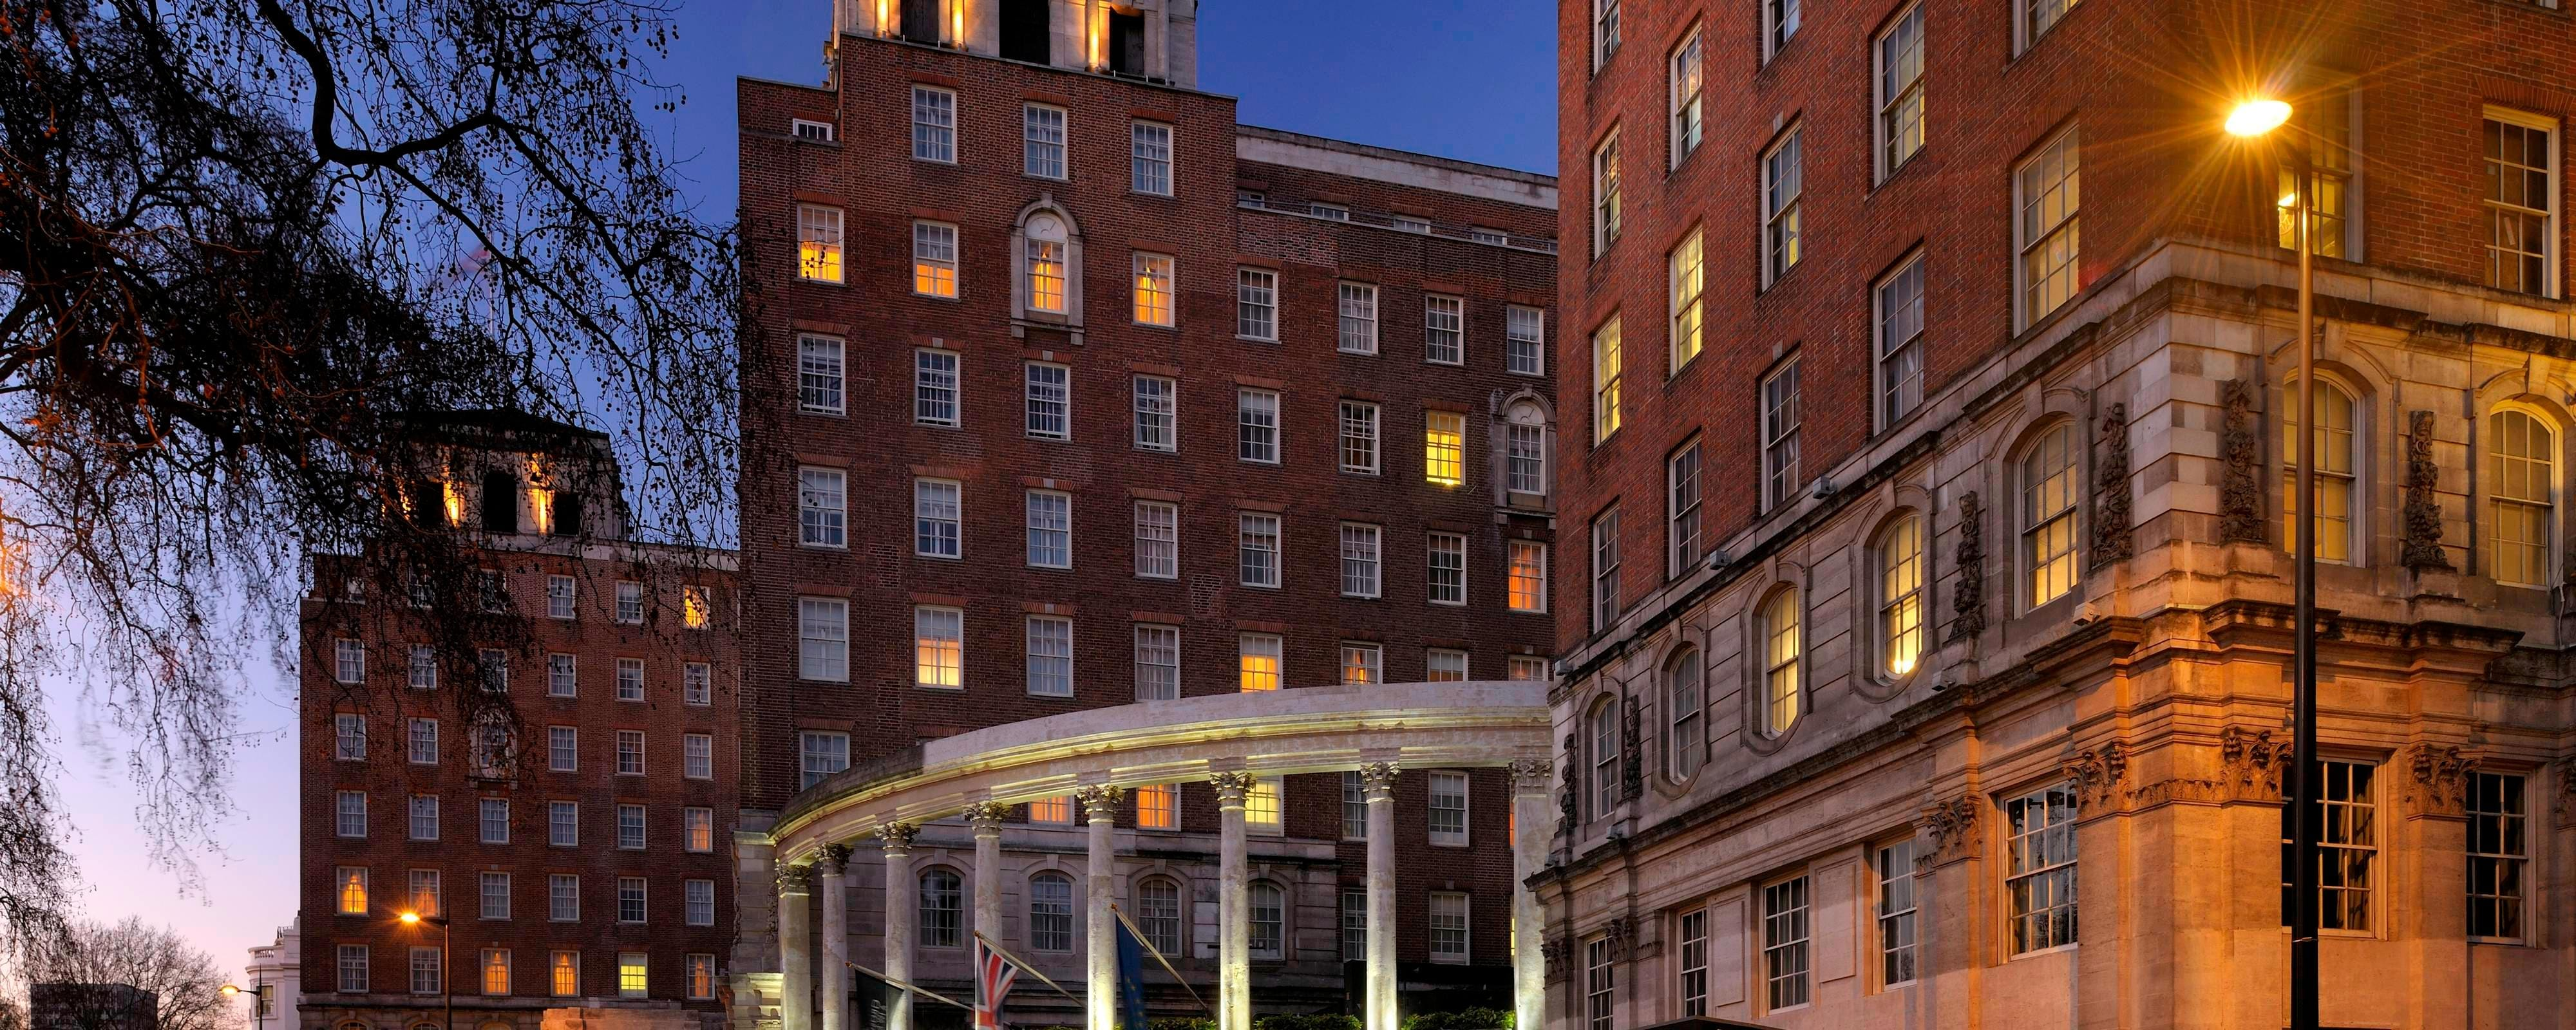 Luxury Park Lane, hotel de Londres